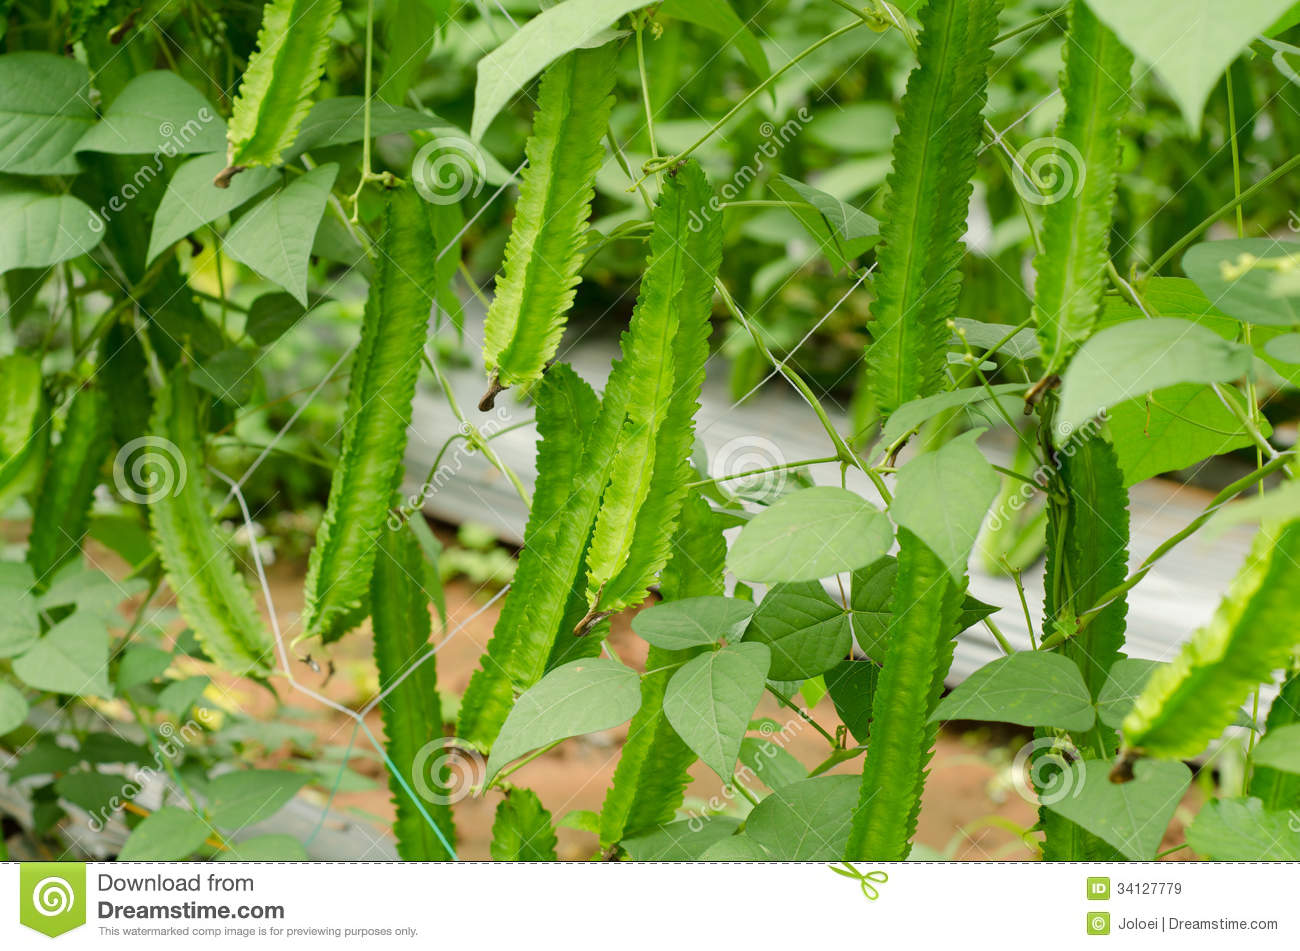 Winged Bean Plant Royalty Free Stock Images - Image: 34127779